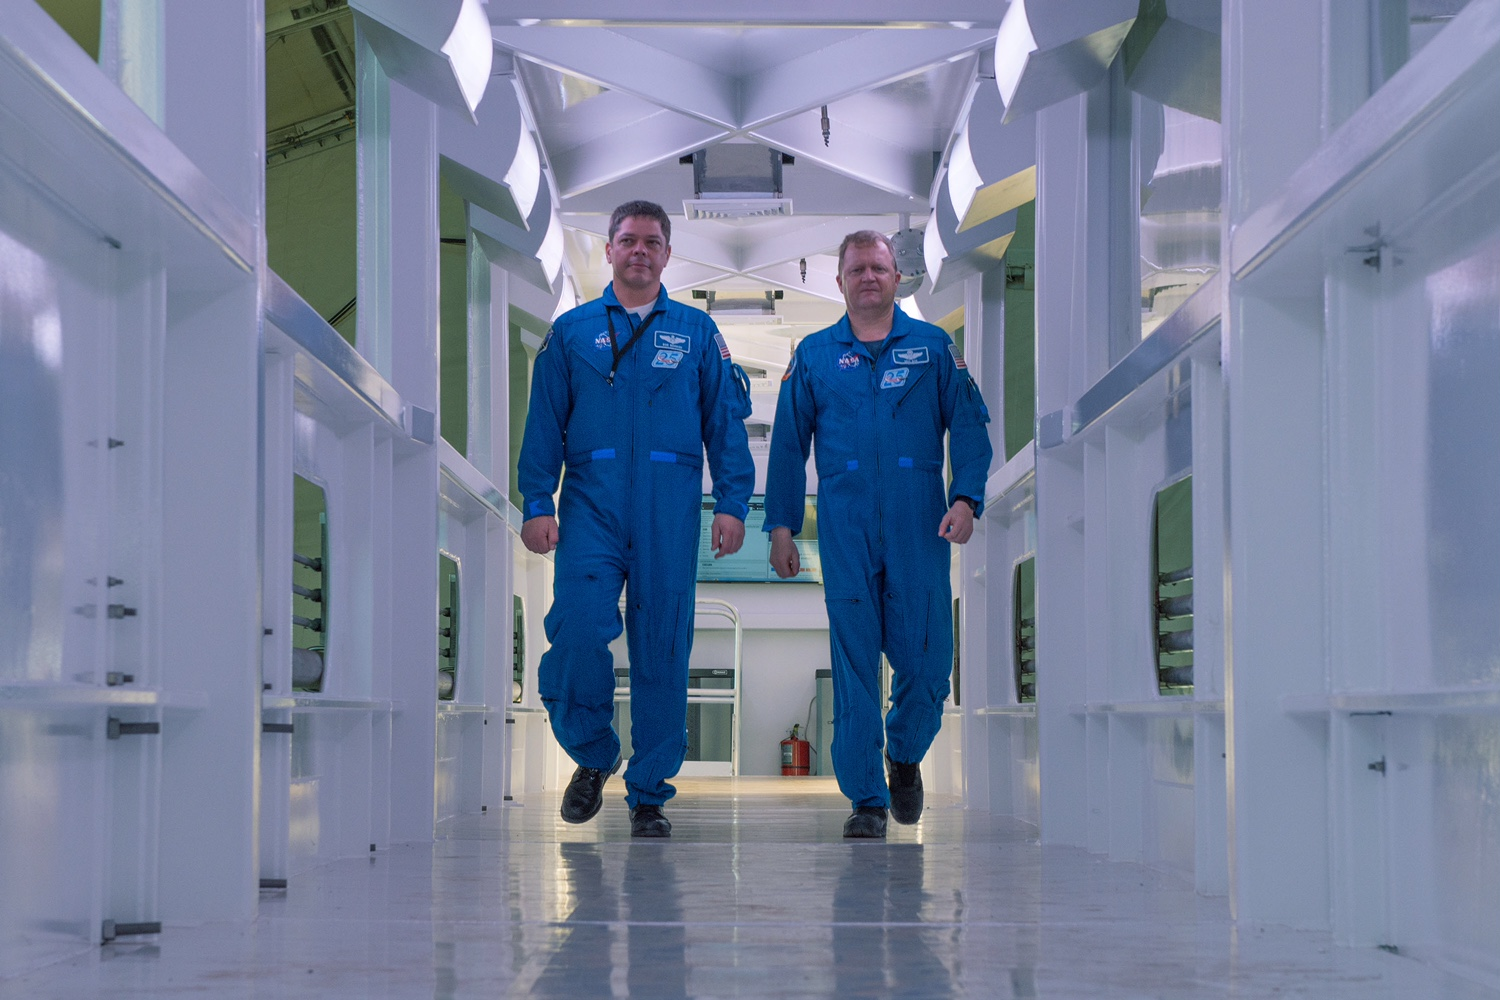 Astronauts Bob Behnken and Eric Boe walk down the Crew Access Arm being built by SpaceX for Launch Complex 39A at NASA's Kennedy Space Center in Florida